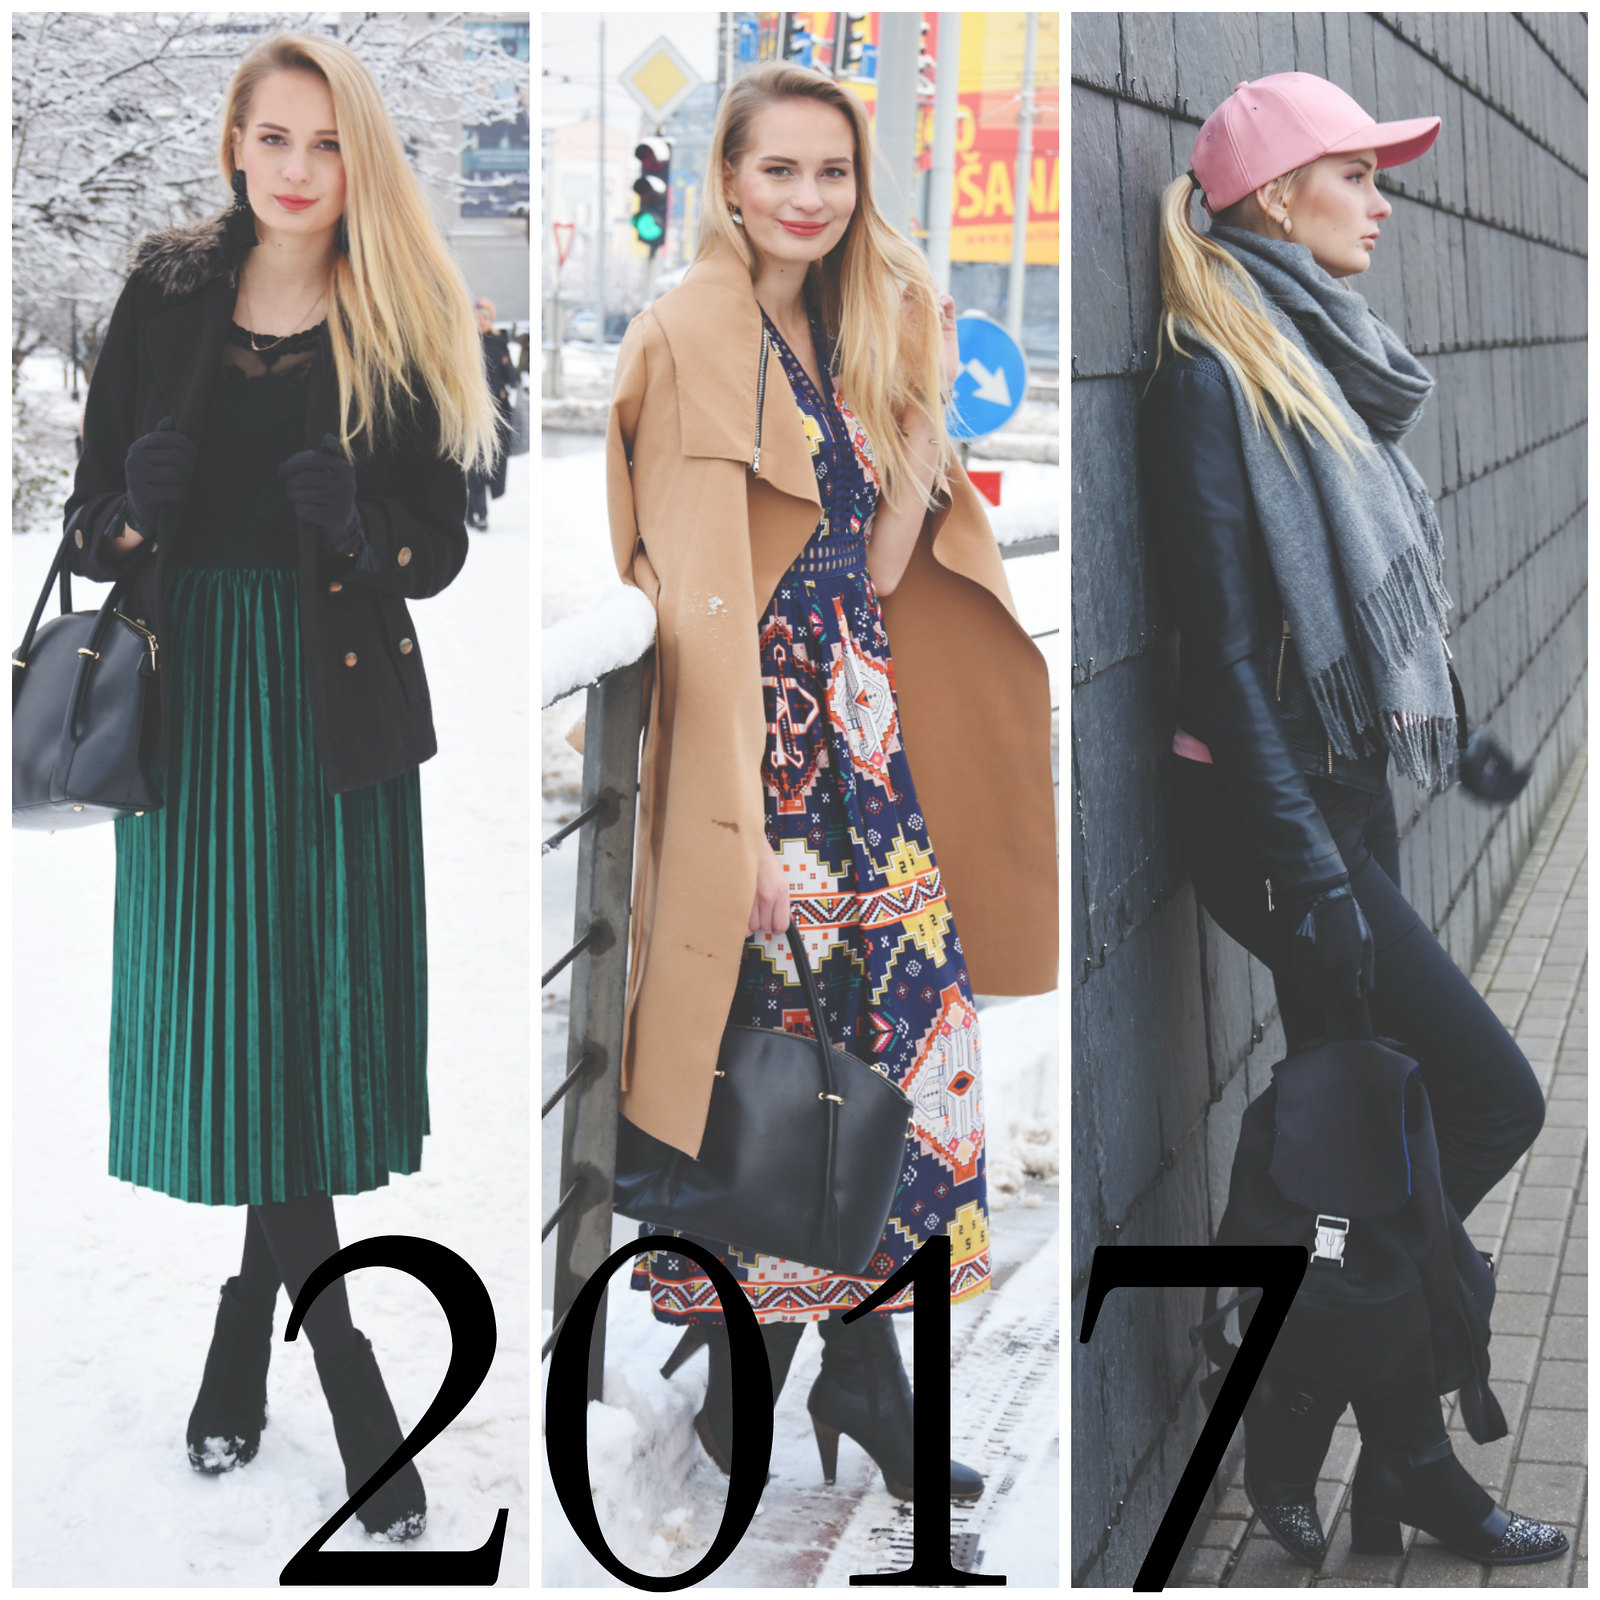 2017 outfits